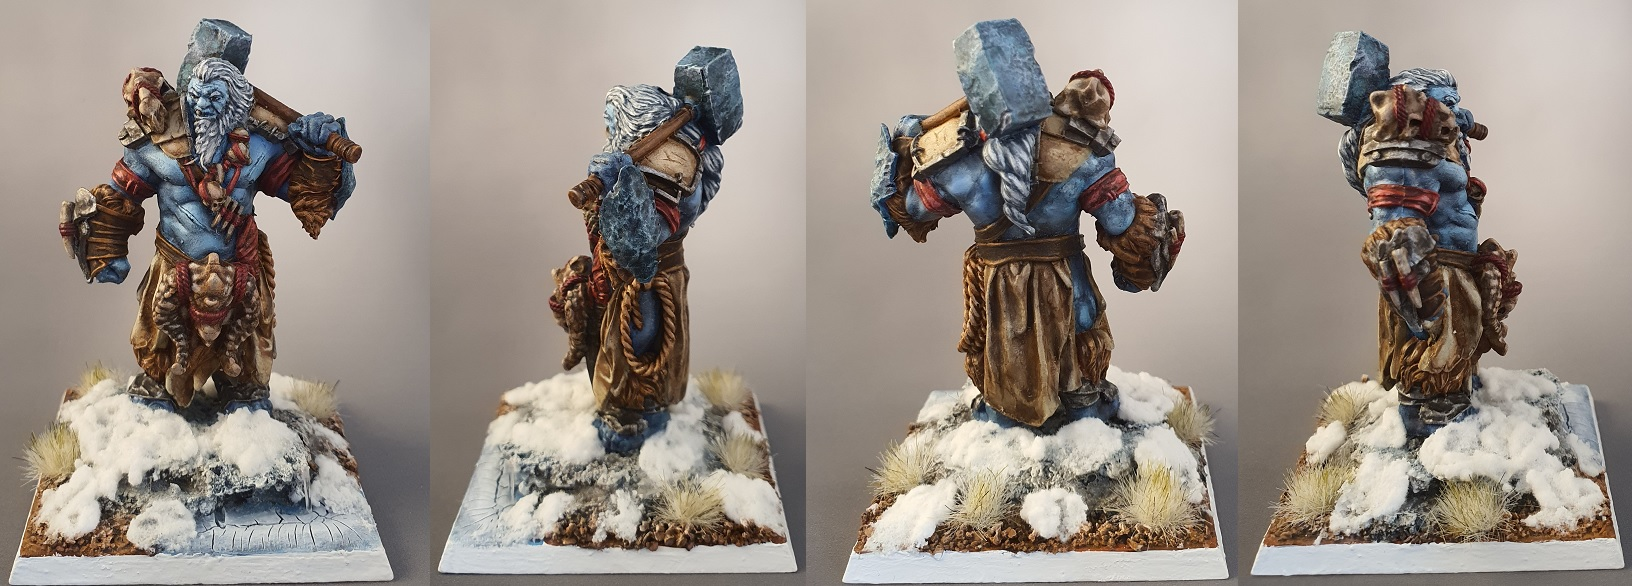 Frost giant / chess king